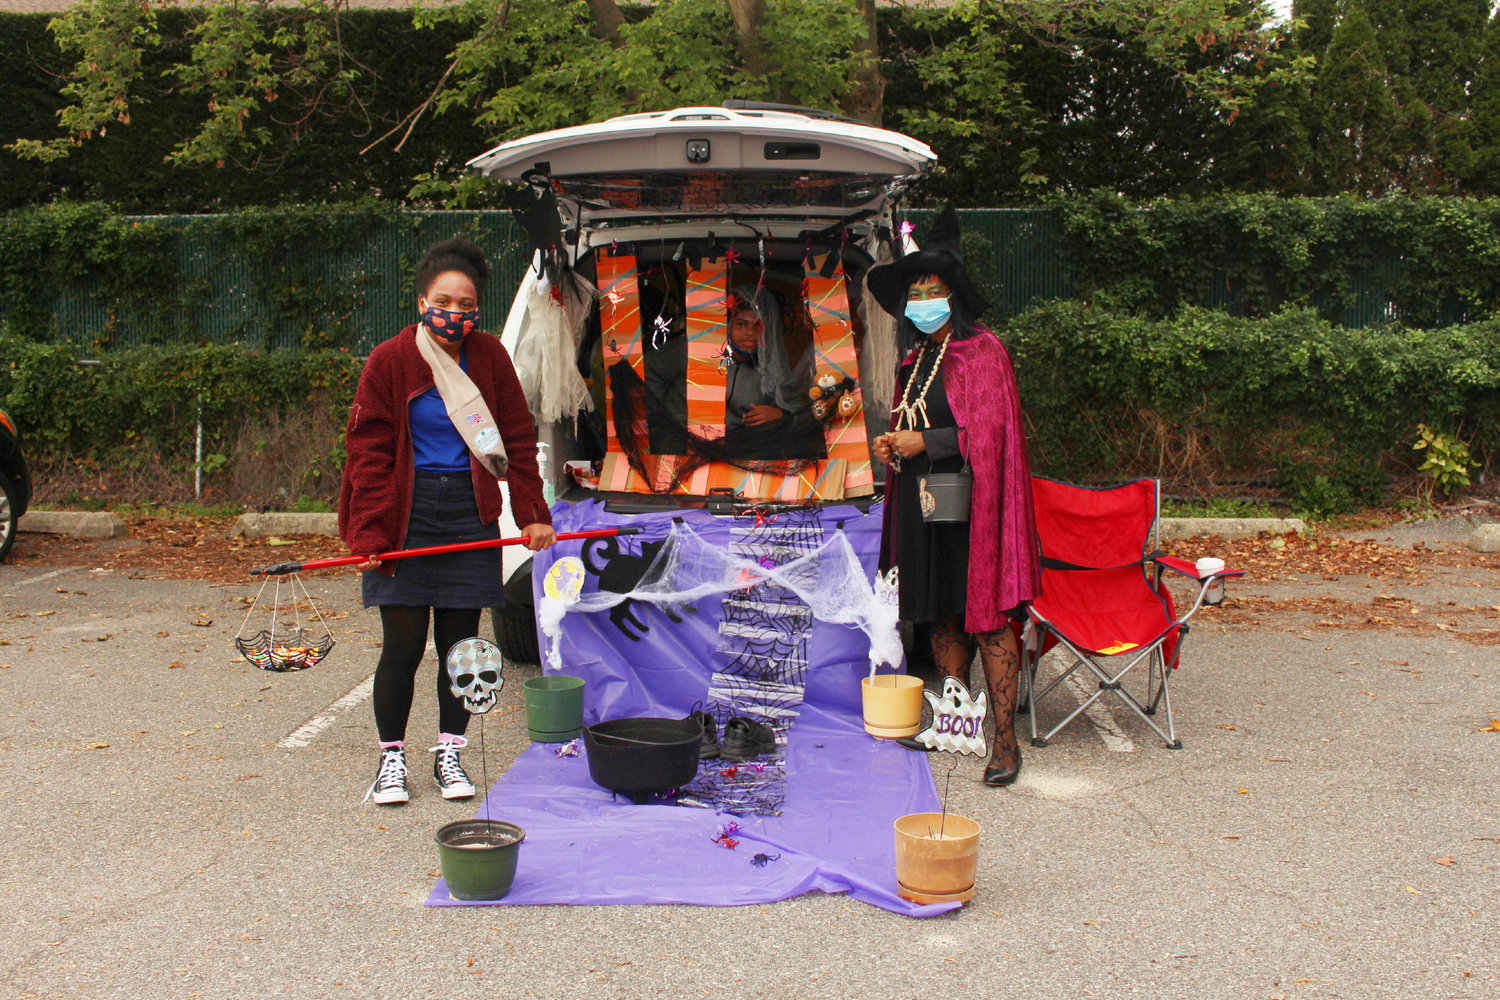 Local scouts and community members sporting Halloween costumes attended the Baldwin BSA Troop 824 and St. Christopher's Church's 6th annual Trunk or Treat fundraiser, benefiting the church pantry, on Oct. 25.